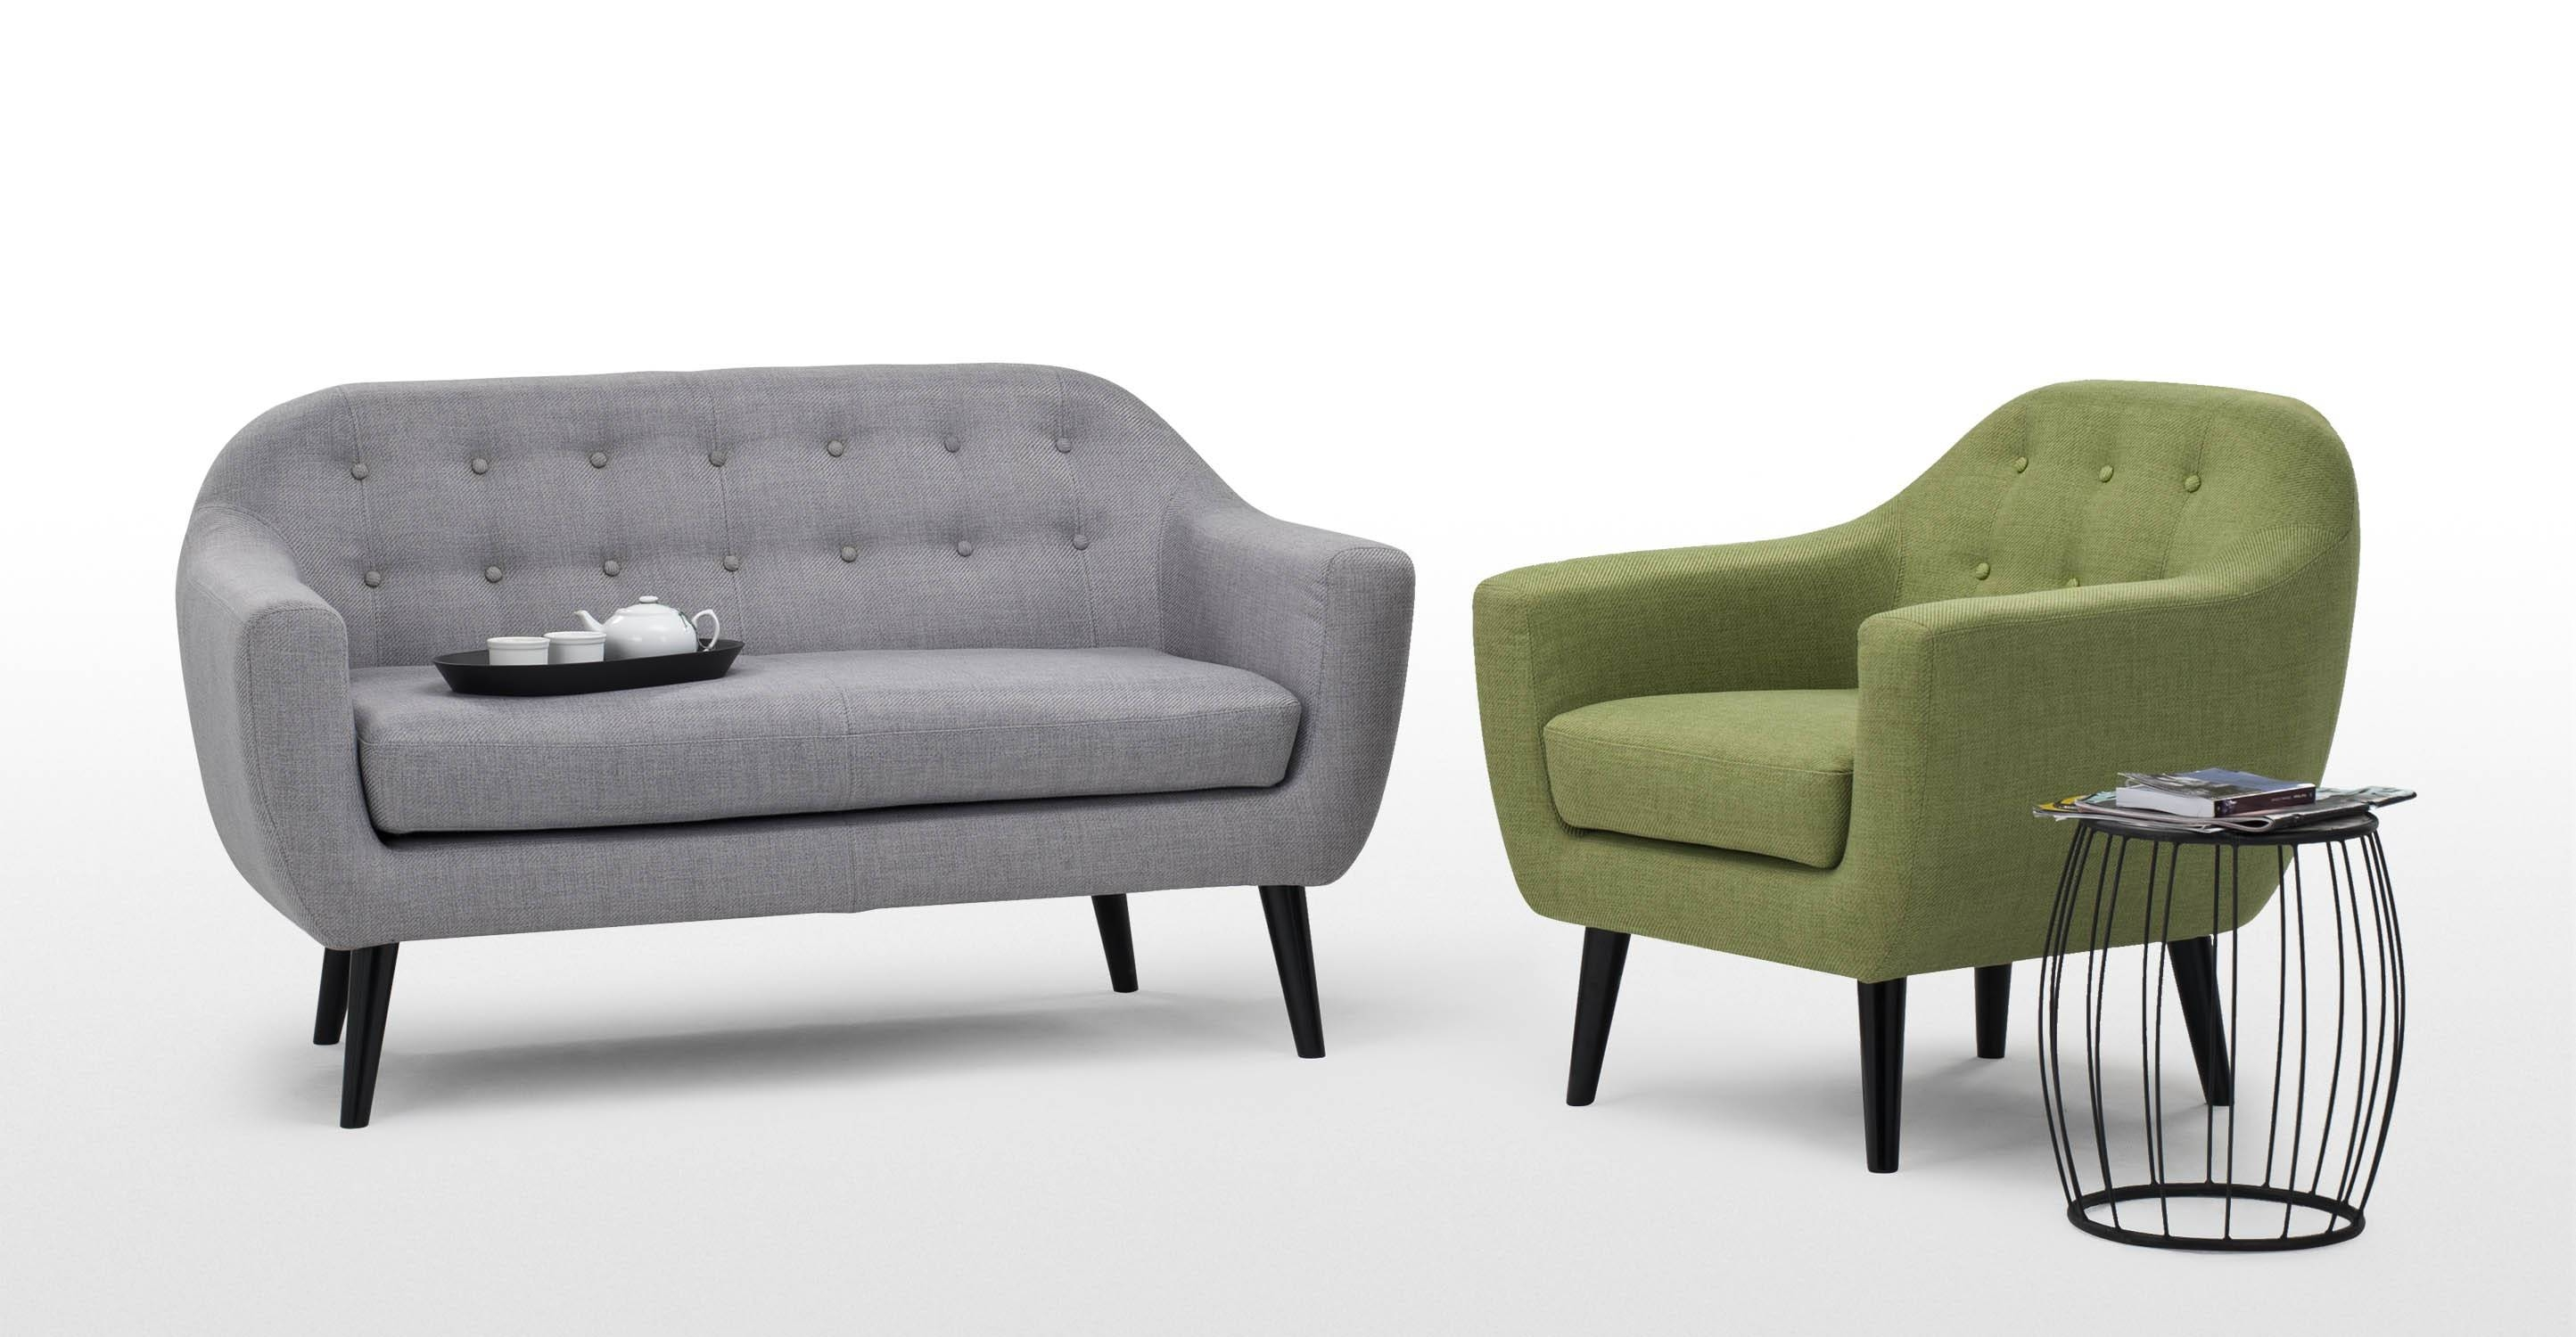 Ritchie 2 Seater Sofa In Pearl Grey | Made pertaining to Grey Sofa Chairs (Image 24 of 30)